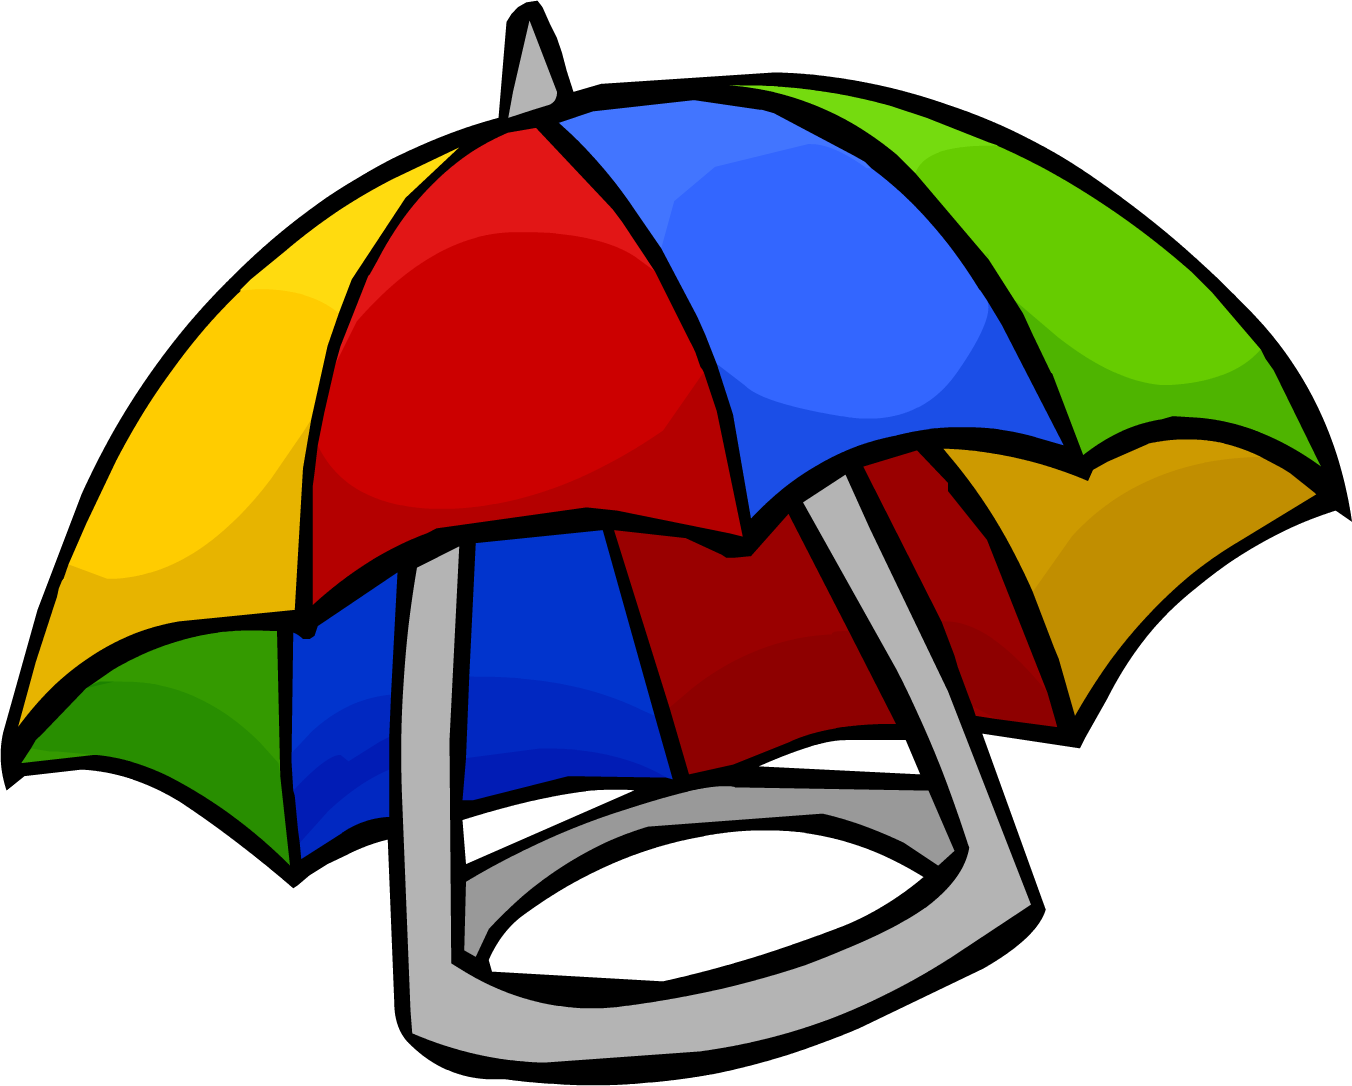 Club clipart party. Umbrella hat penguin wiki